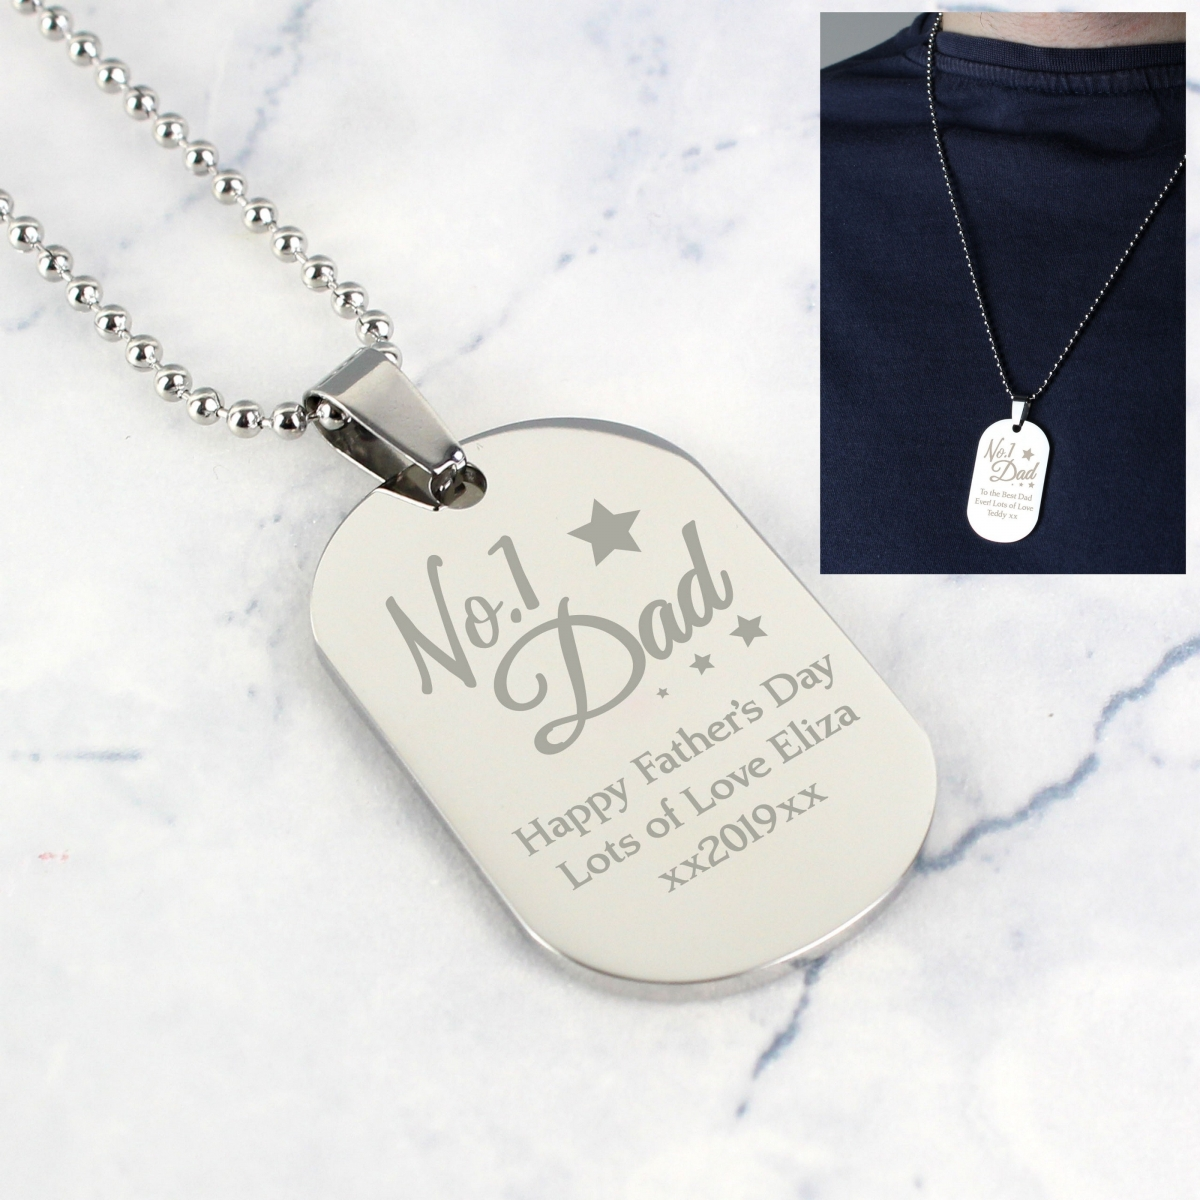 Personalised No.1 Dad Stainless Steel Dog Tag Necklace